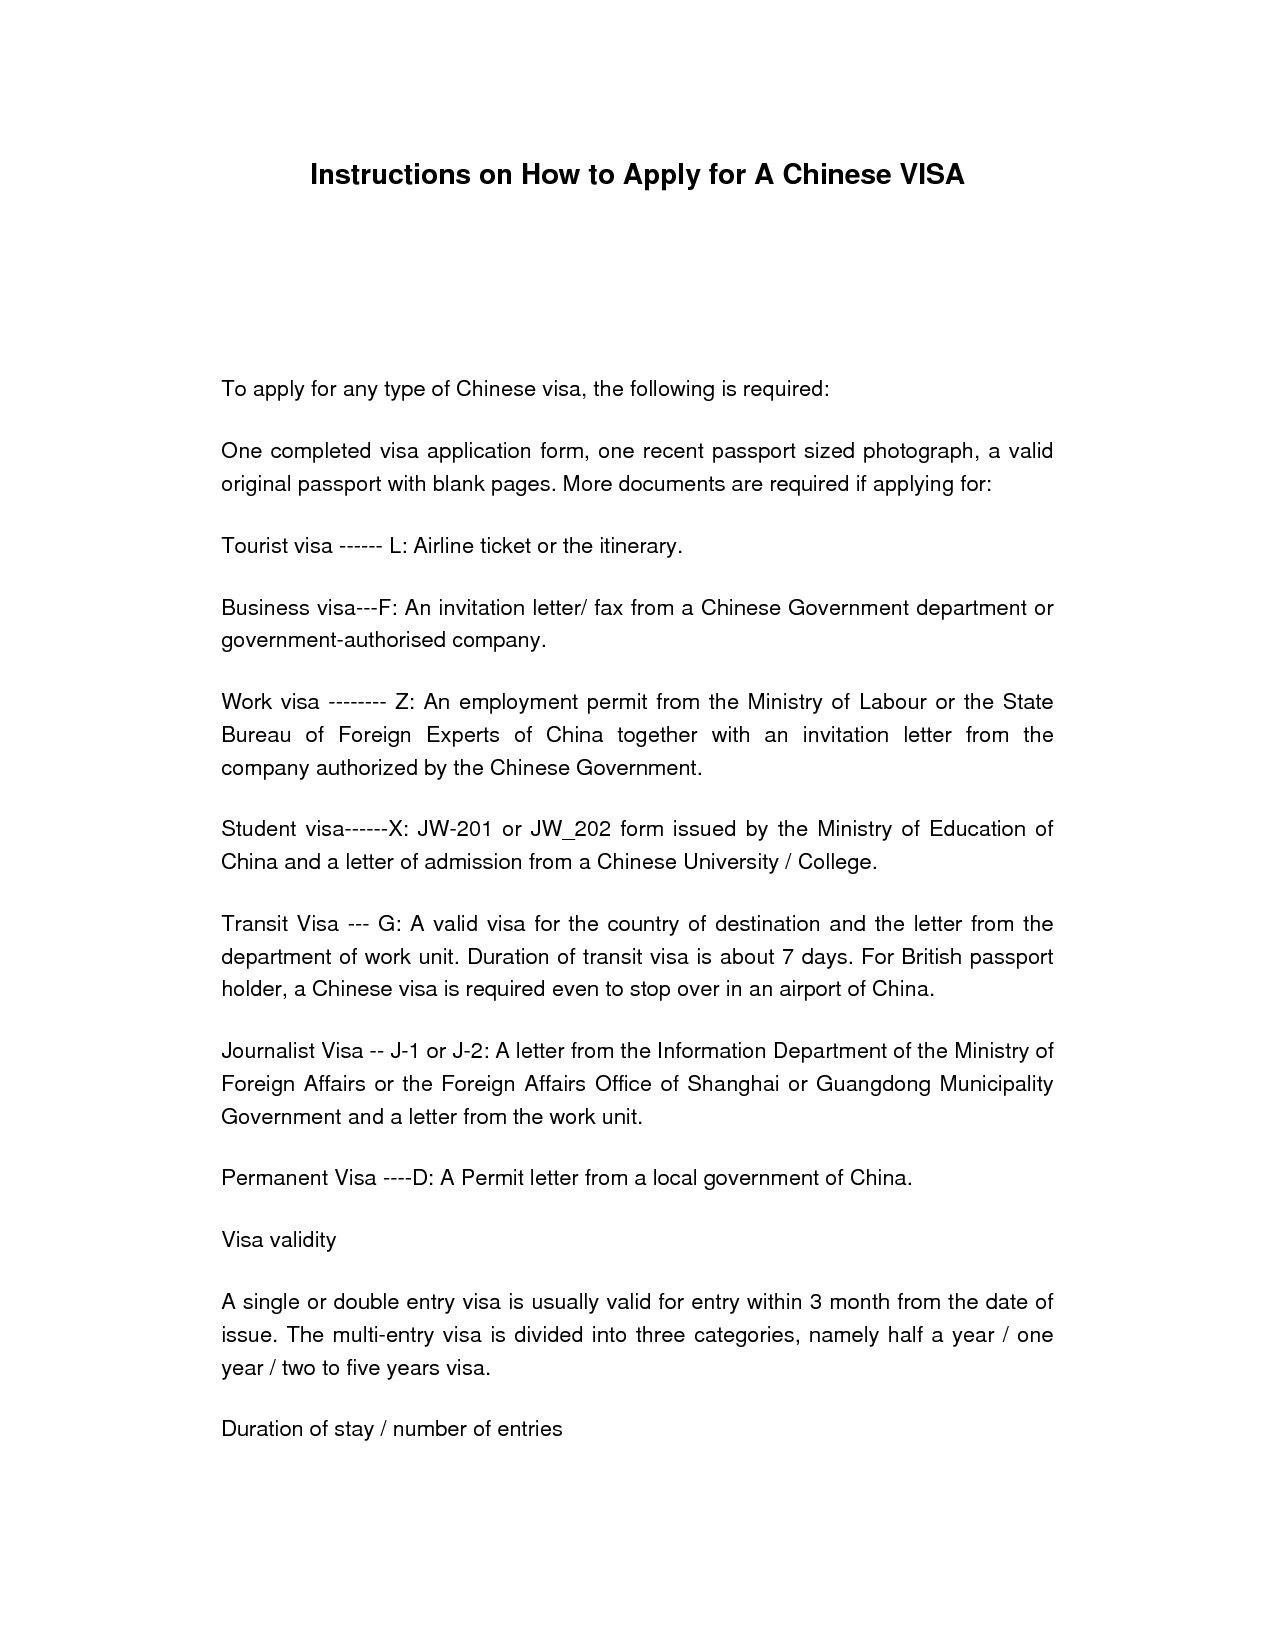 applicant letter template example-Formal Cover Letter Format Australia Save Formal Letter Template Unique Bylaws Template 0d Wallpapers 50 16-e